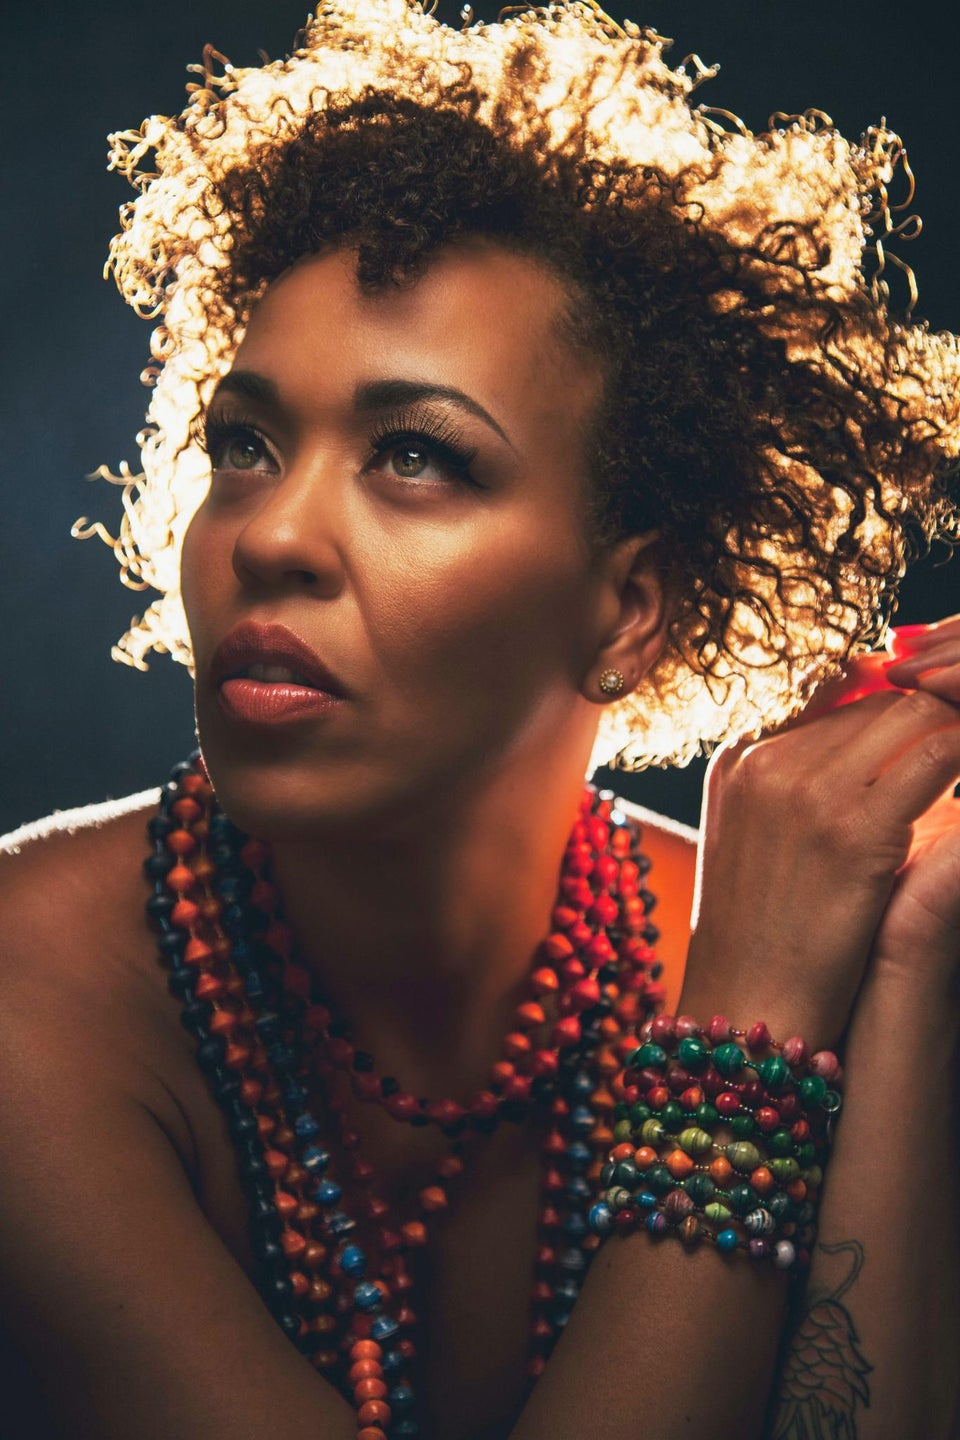 EXCLUSIVE: Hear Maya Azucena's New Song 'Fearless'